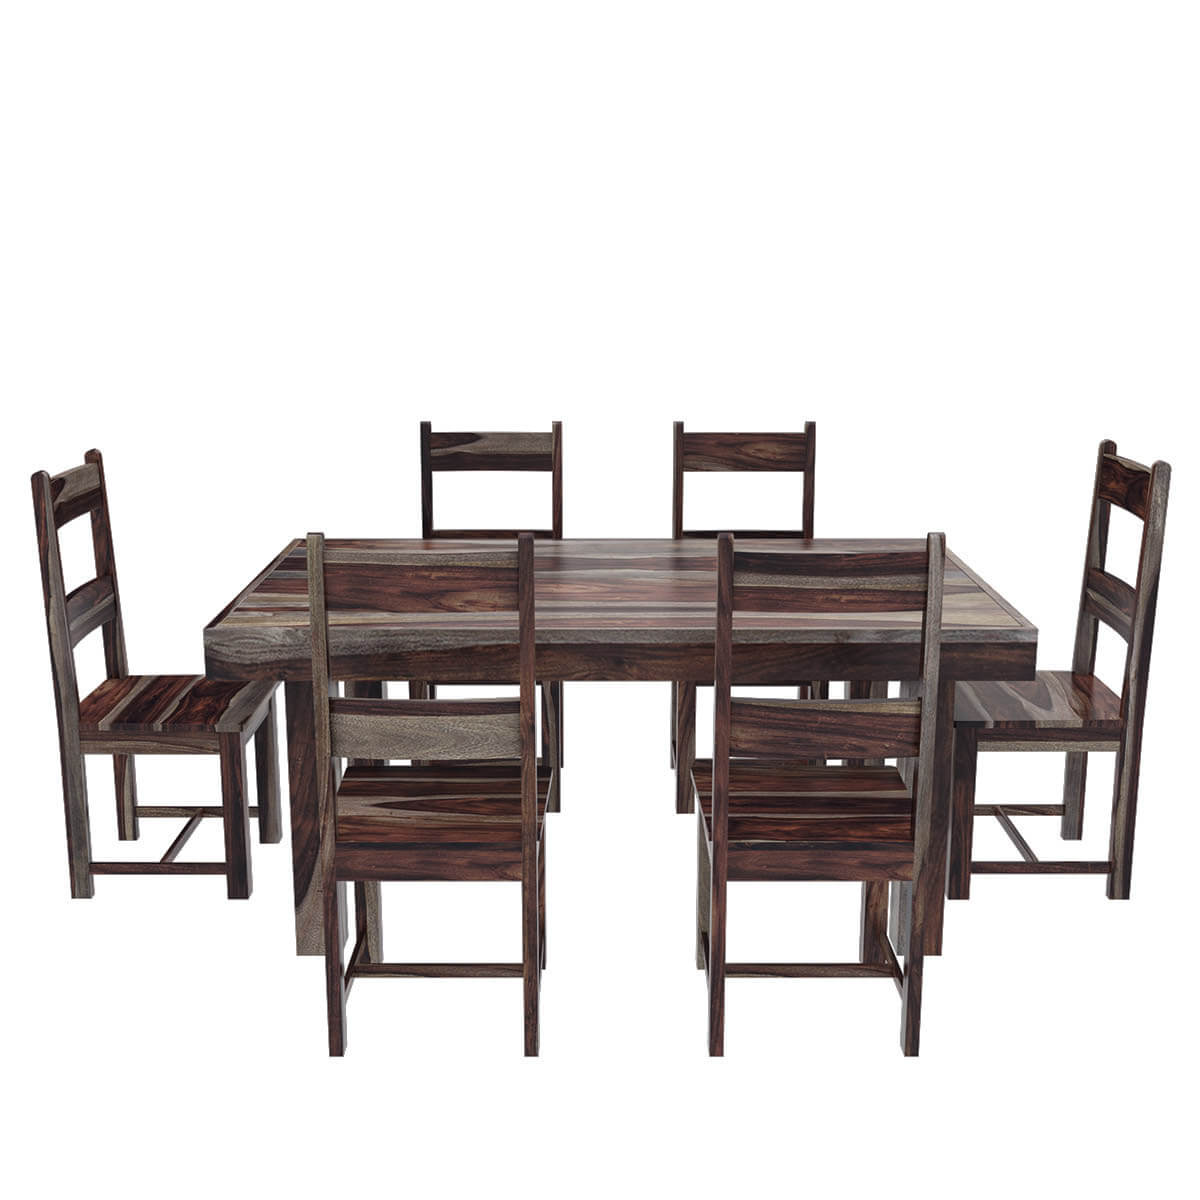 Frisco modern solid wood casual rustic dining room table for Wooden dining room chairs